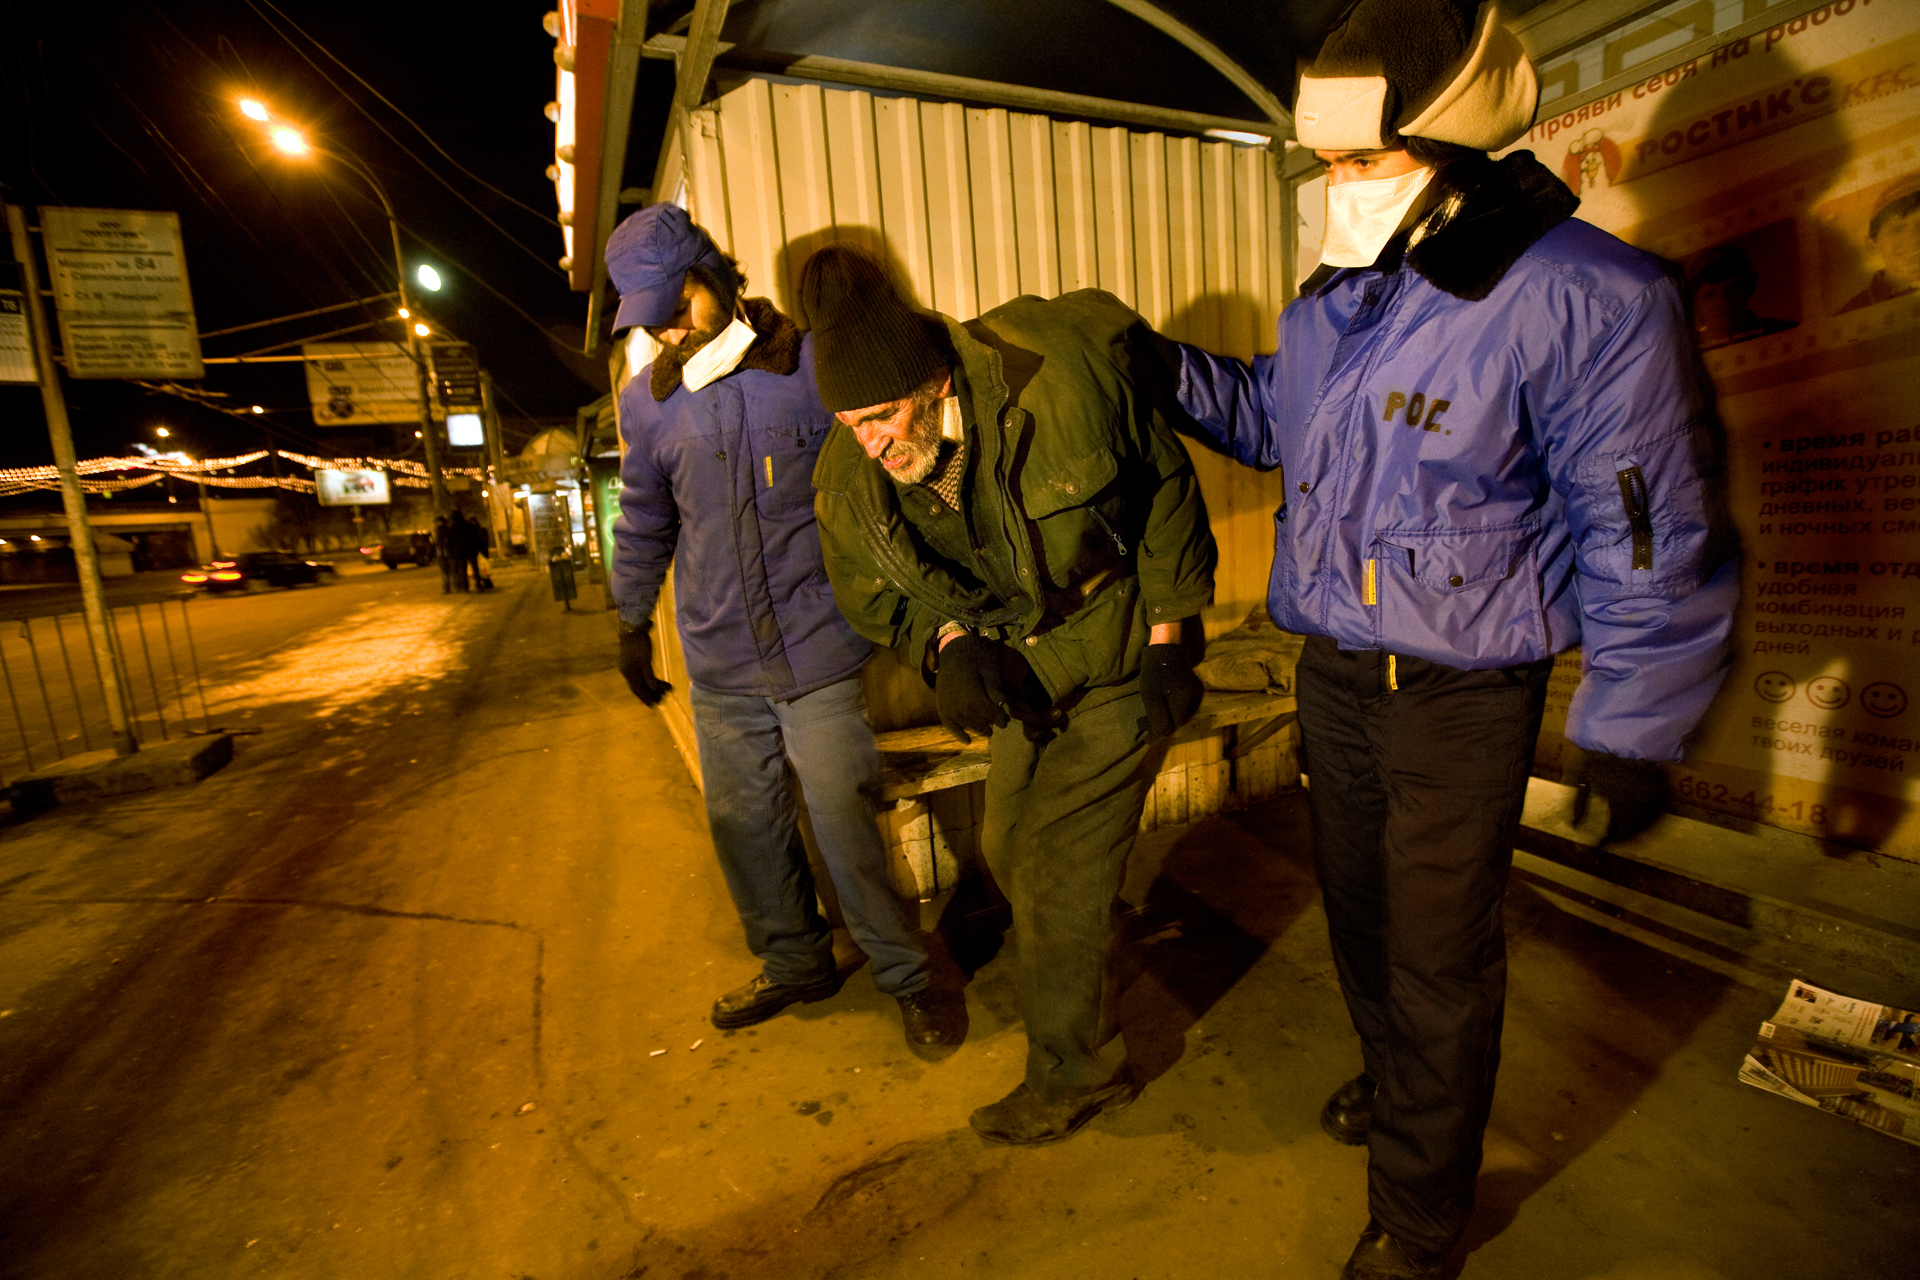 11:46 PM - Volunteers guide an old homeless man towards a Soviet-era bus used as a mobile clinic, and during extremely cold nights like this one (-15° C), to keep the homeless from freezing to death on the city streets.